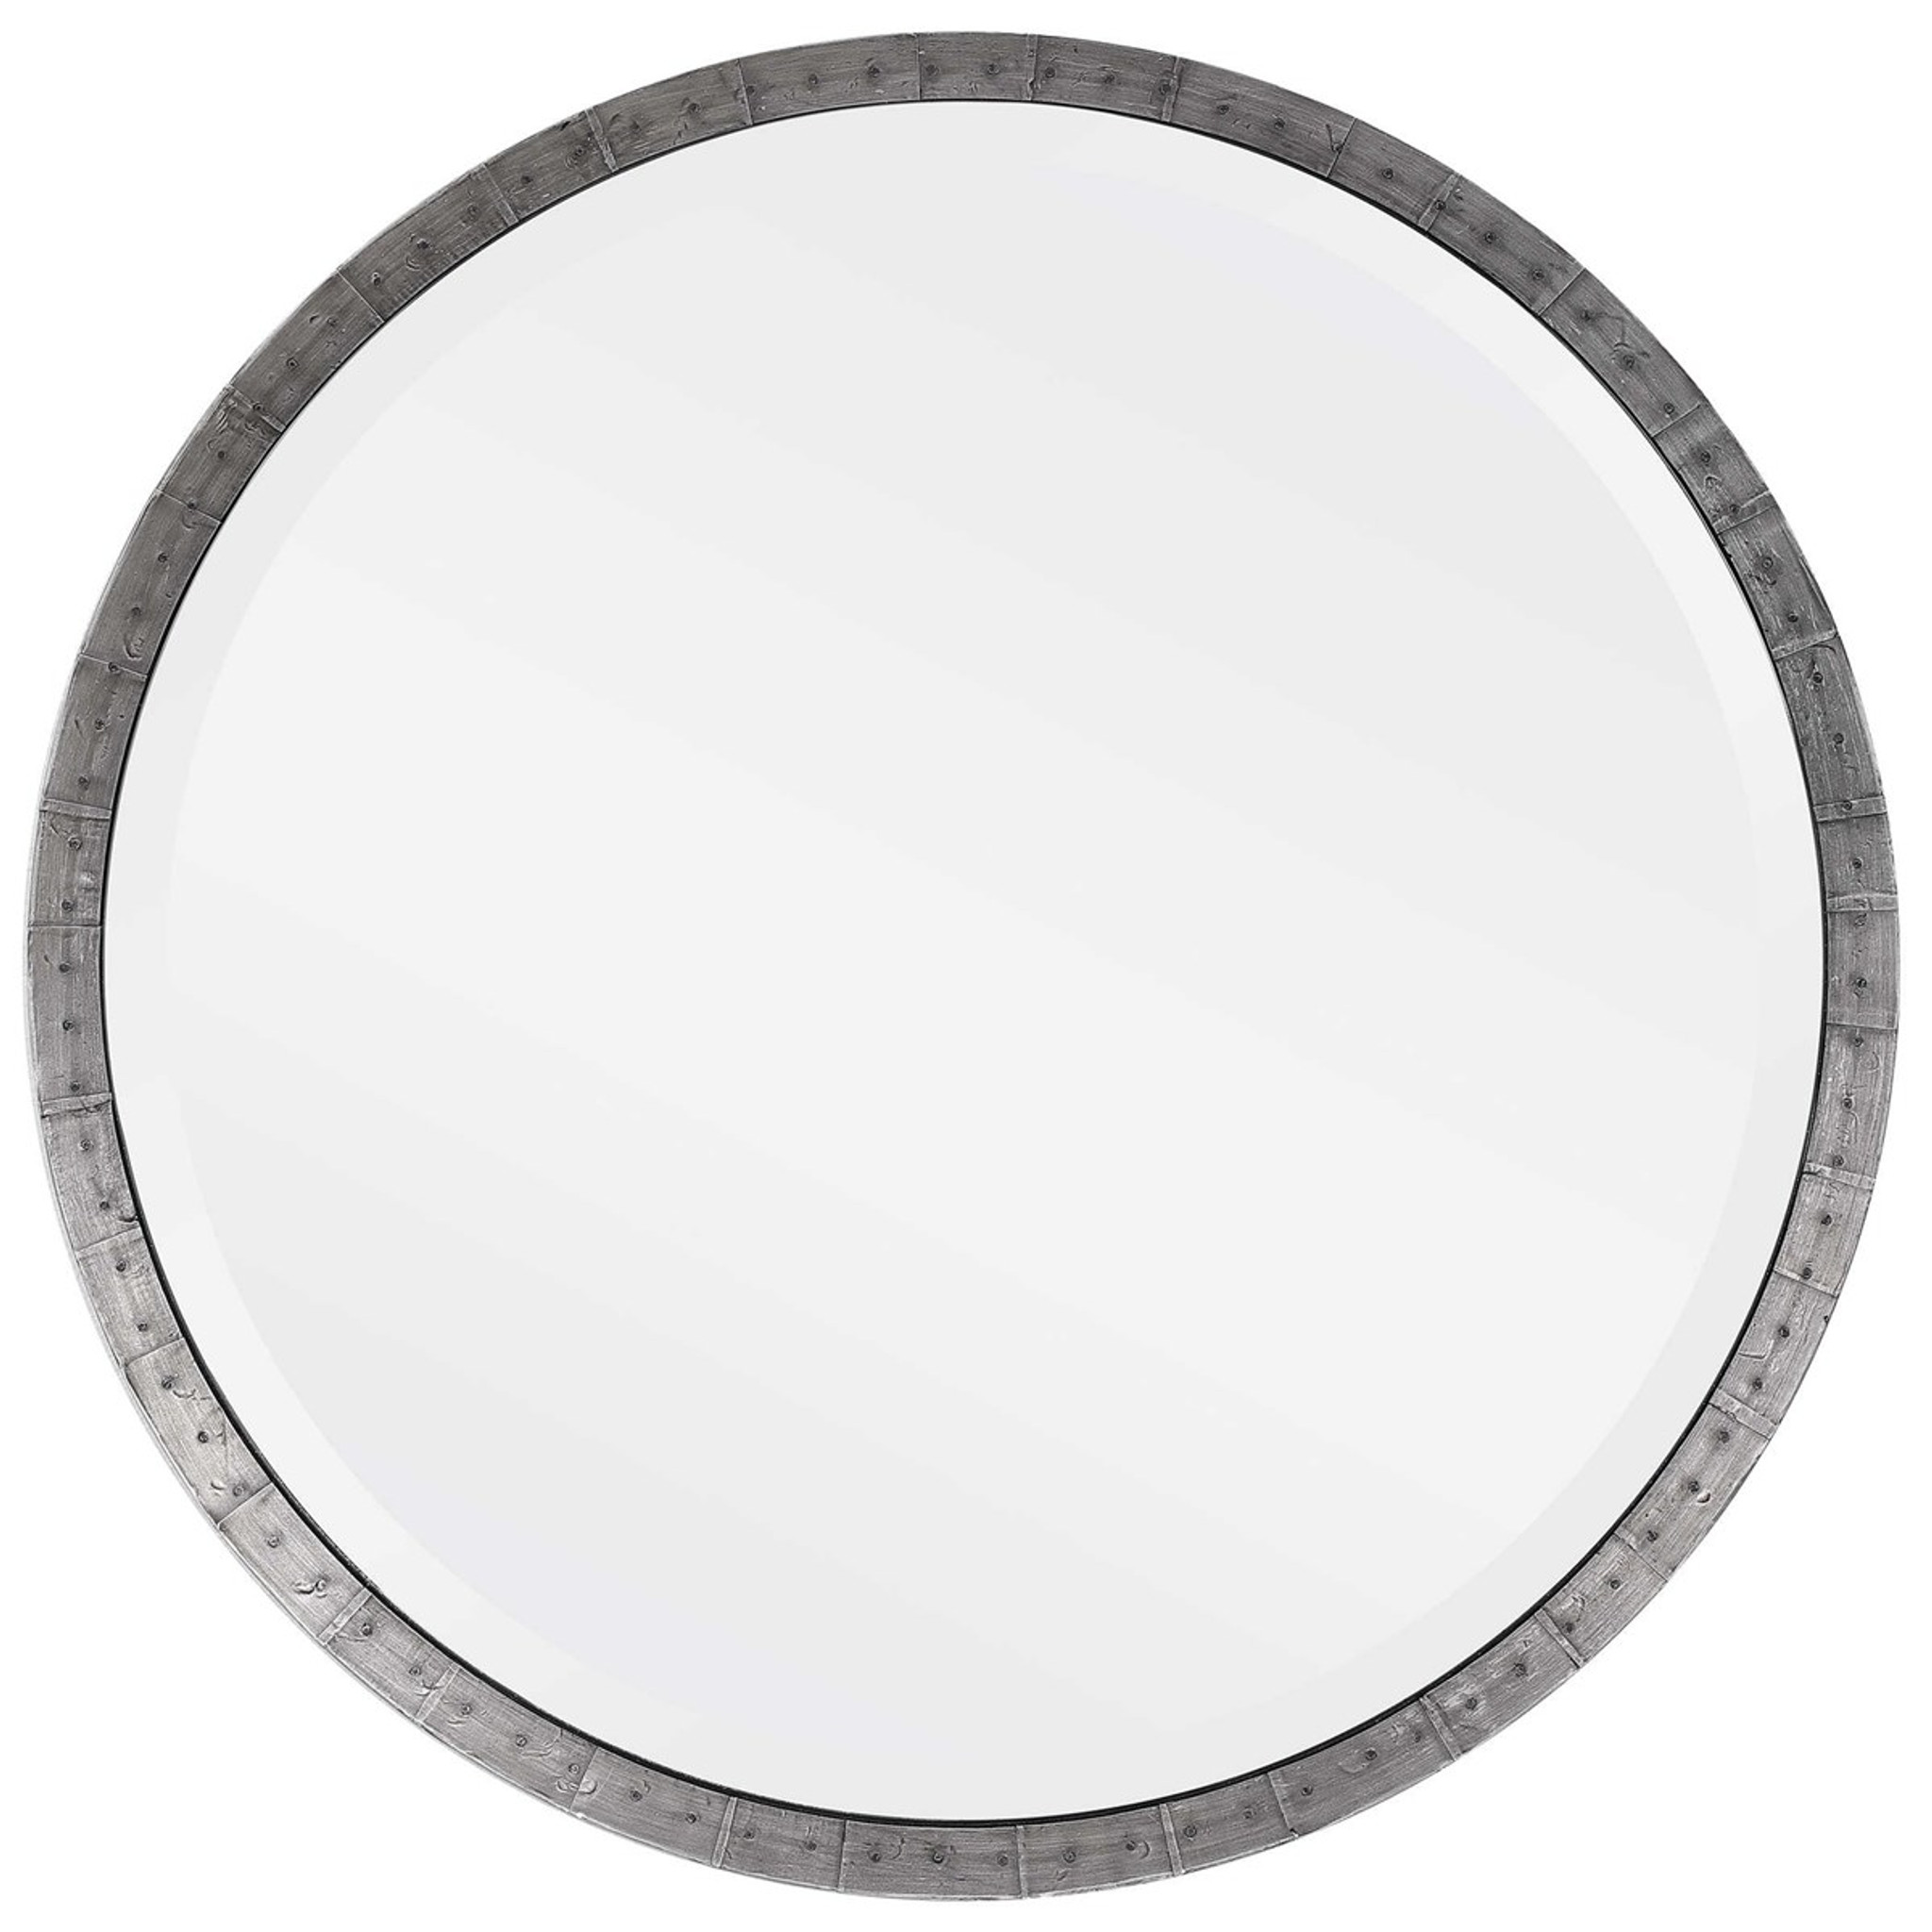 uttermost bartow steel grey industrial style rustic round wall mirror